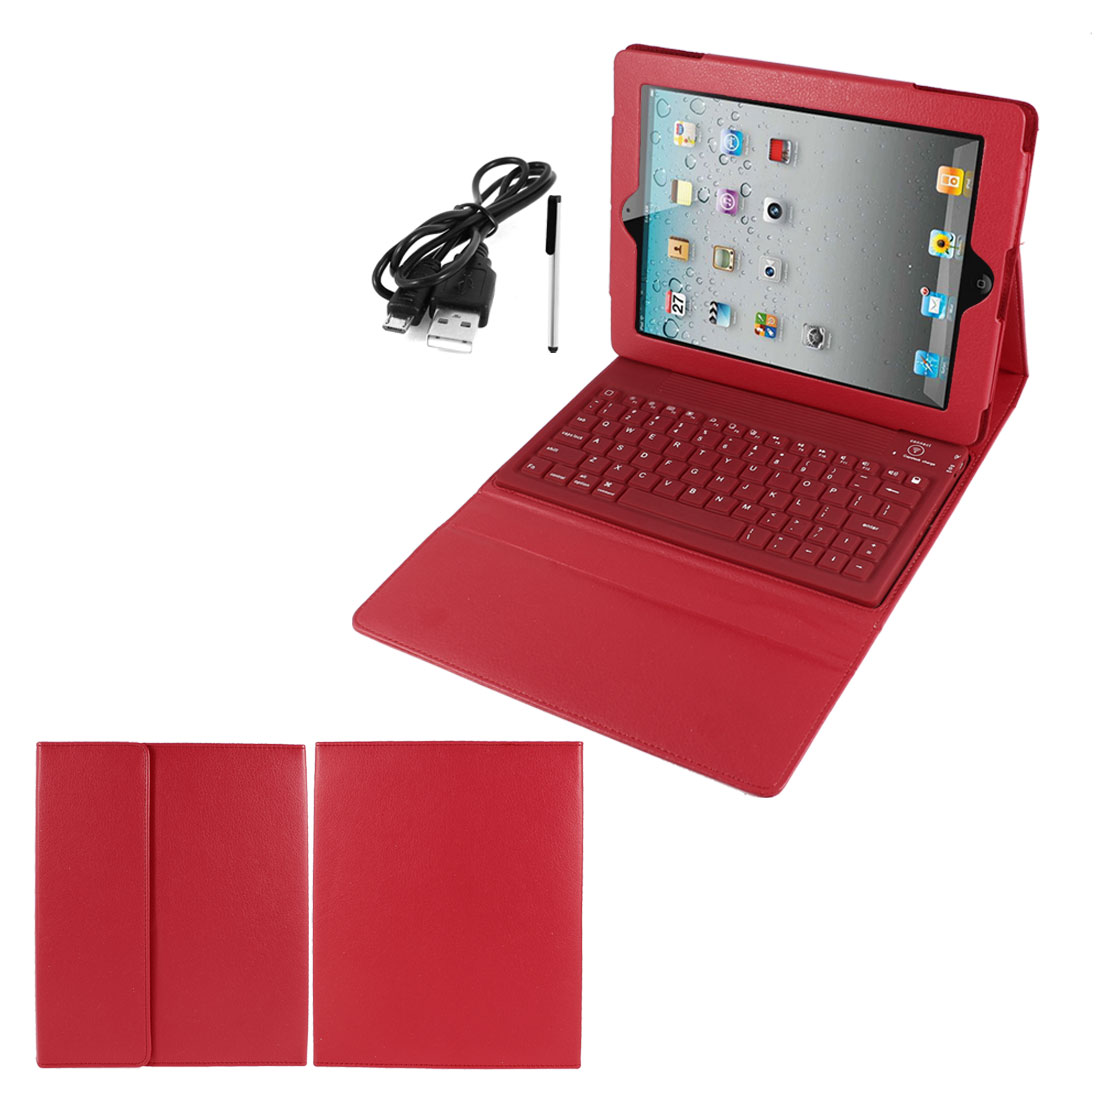 Red PU Leather Magnetic Closure bluetooth Wireless Silicone Keyboard Stand Case Cover for iPad 2 3 4